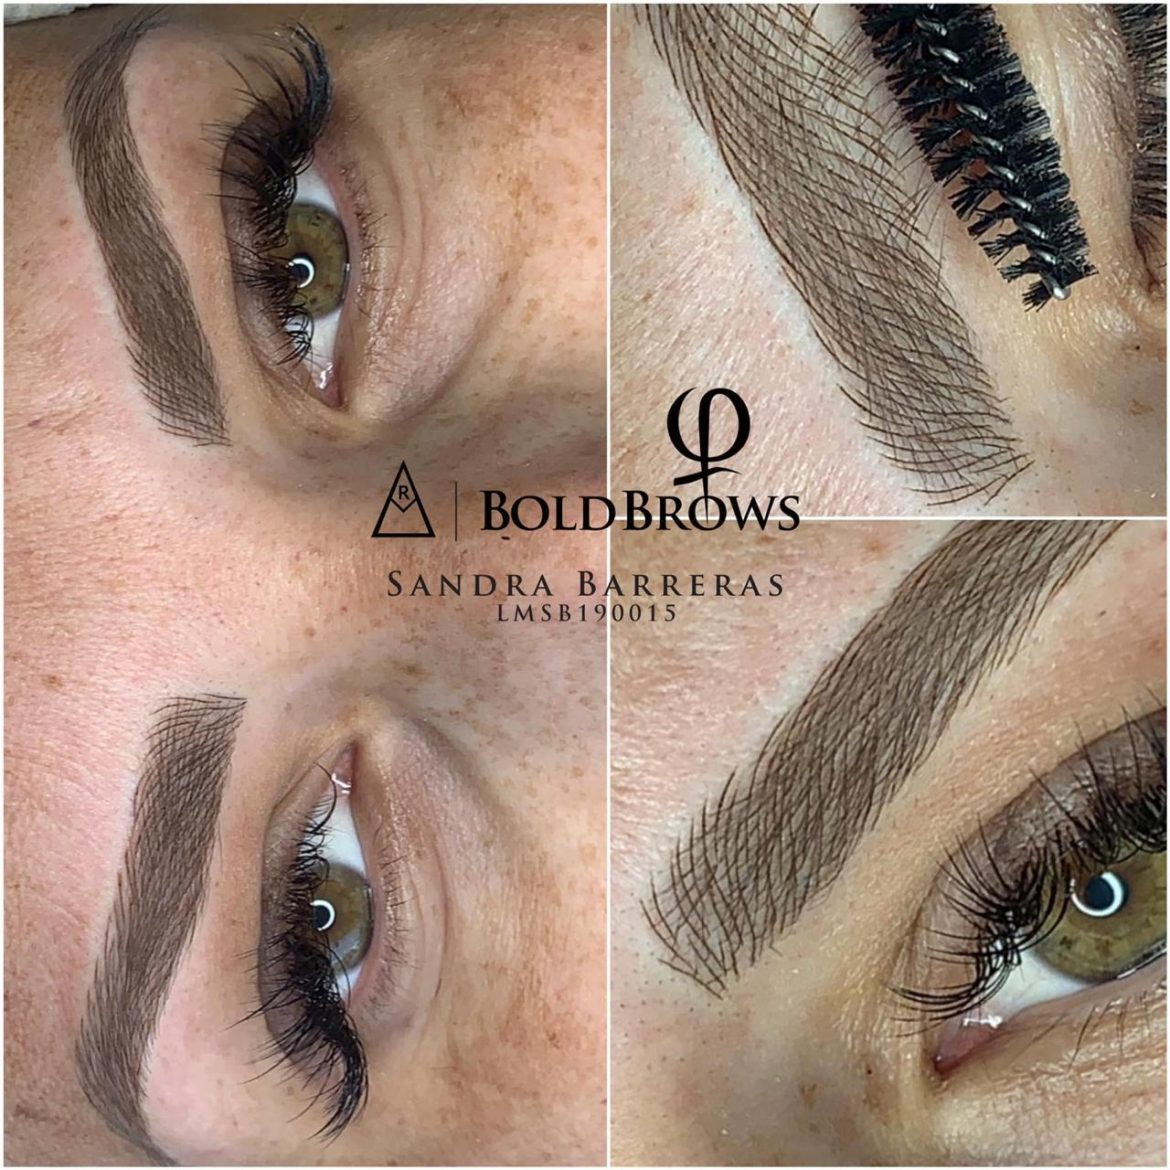 Boldbrows Sandra Barreras